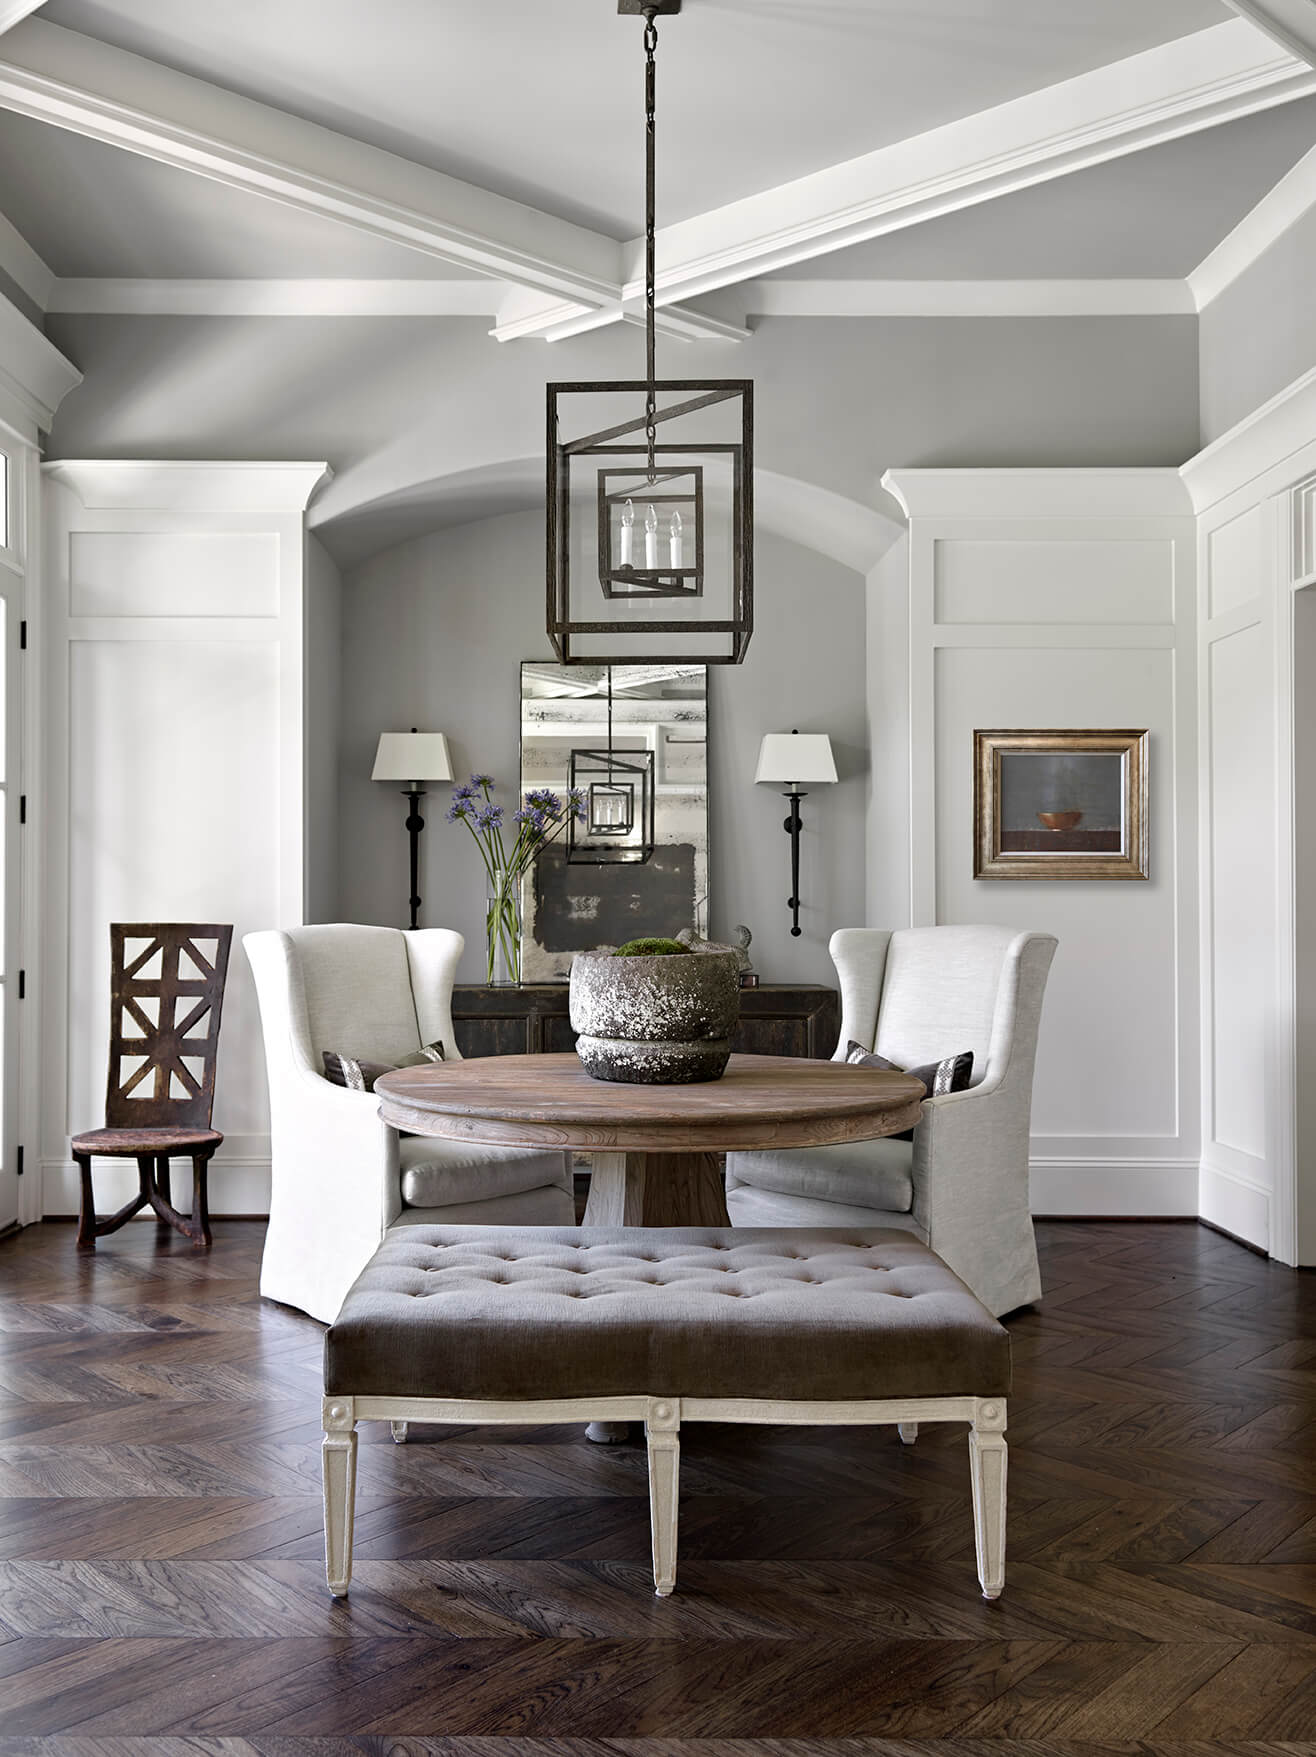 small-dining-area-dark-floor-bench-white-walls-rustic-contemporary-bureau-interior-design-nashville-tn.jpg